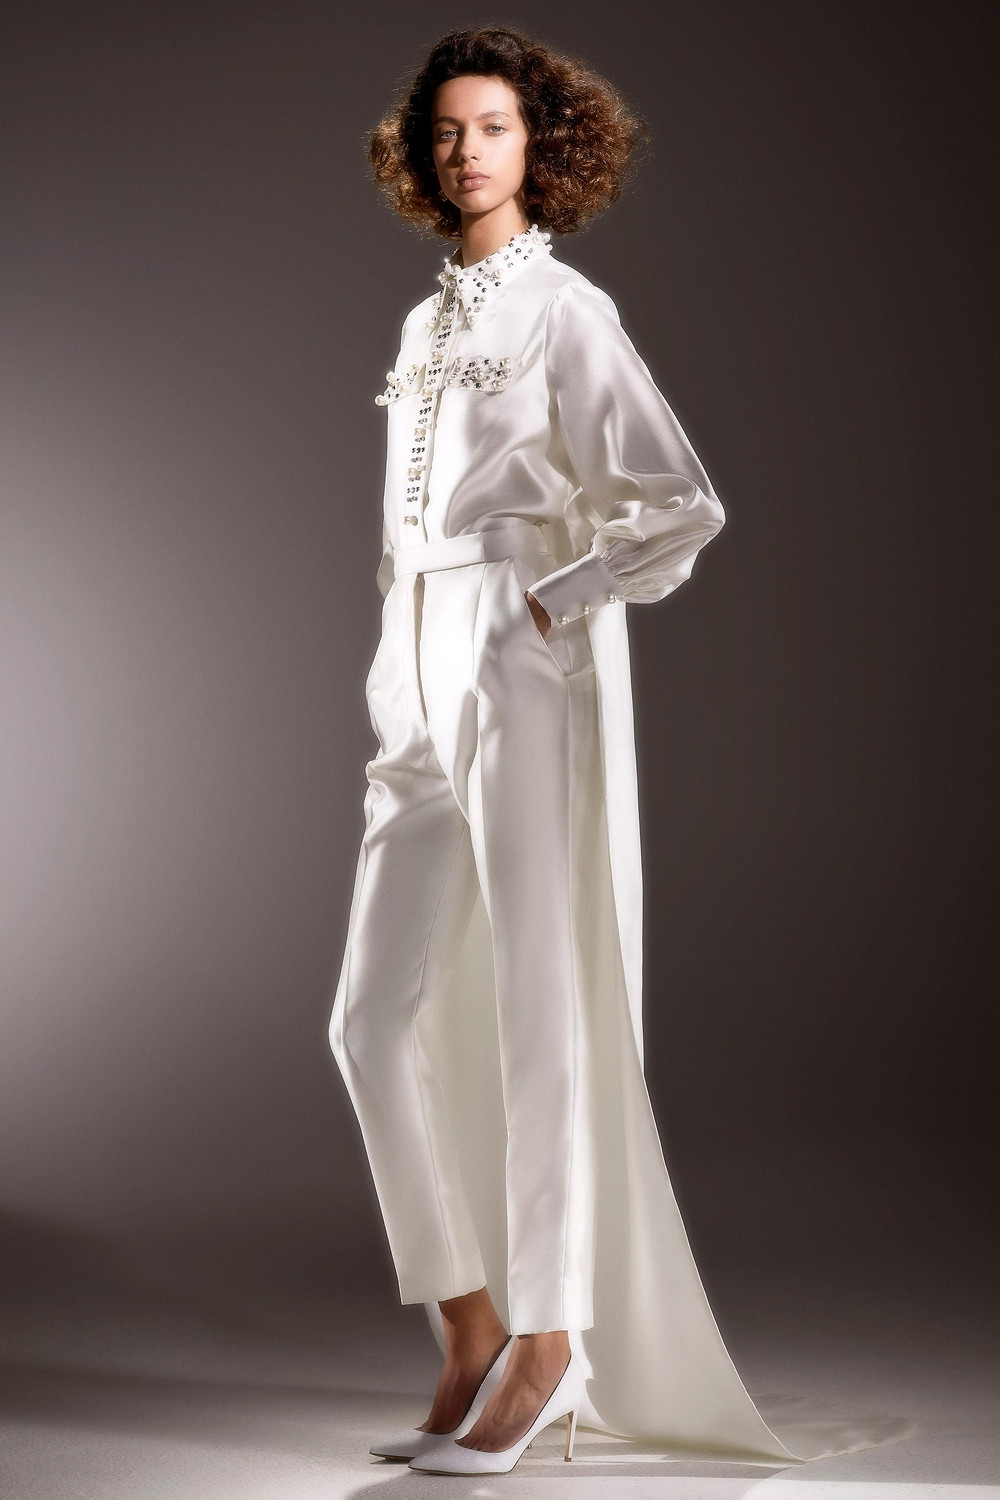 A Viktor & Rolf silk wedding jumpsuit with pearls and beading and a train